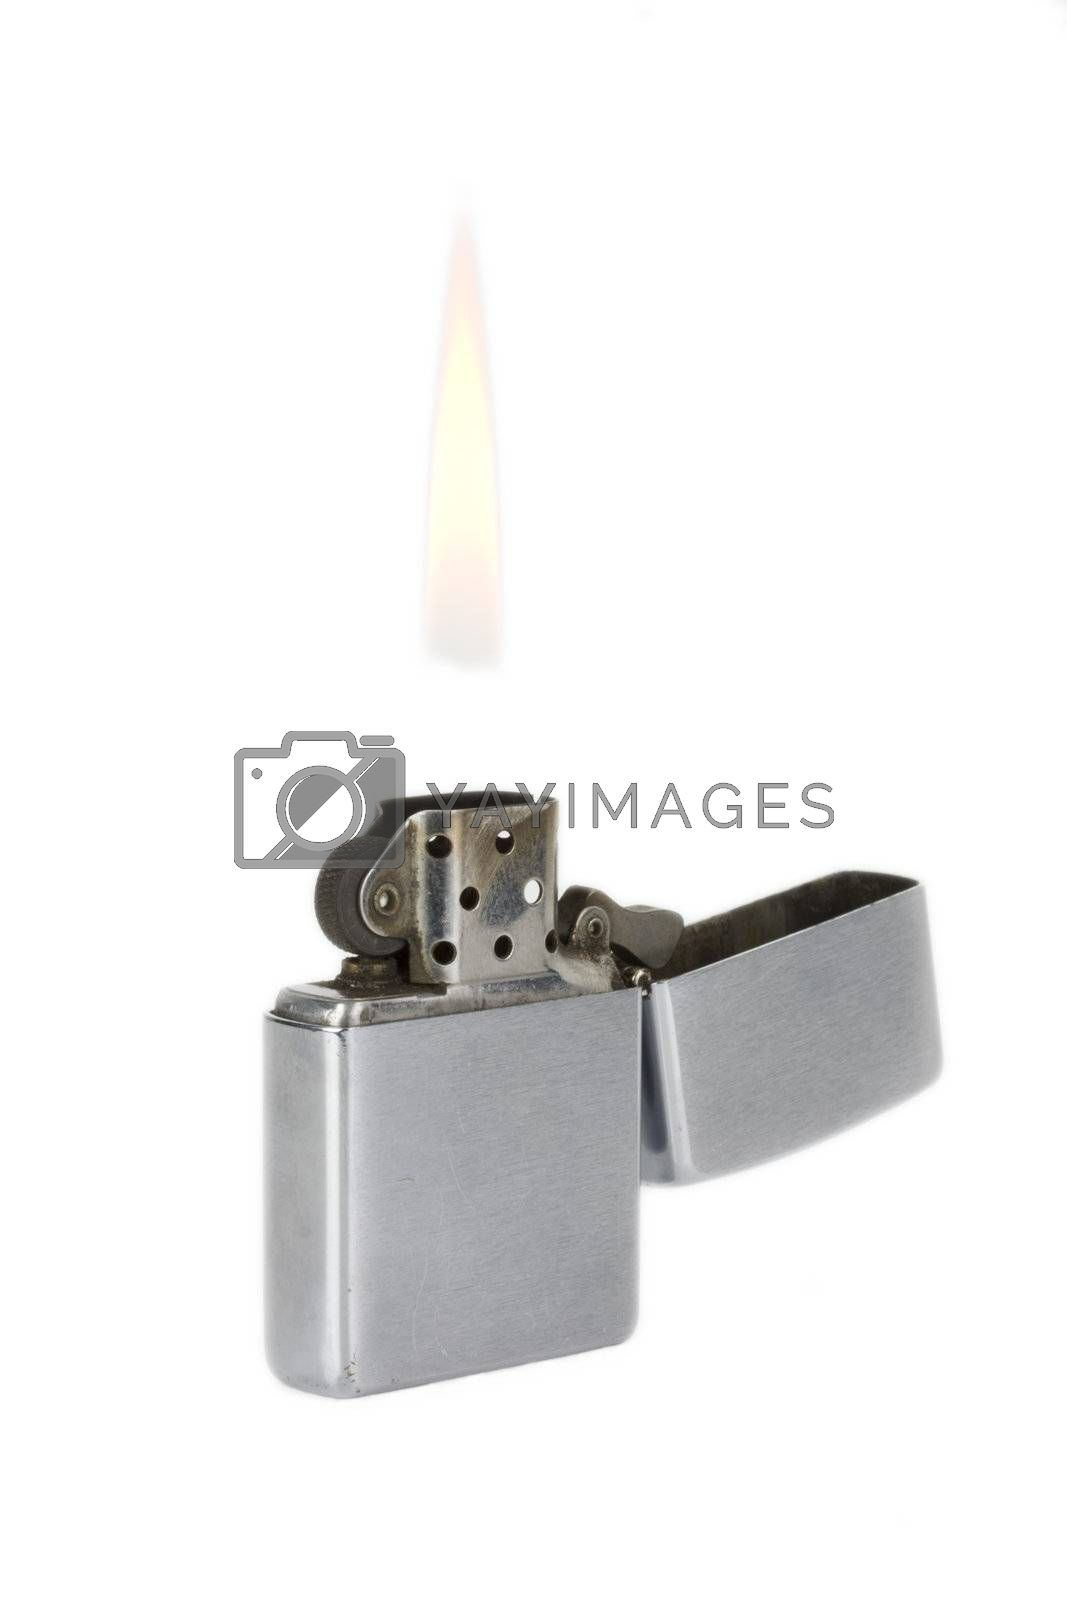 battered lighter with flame on white background